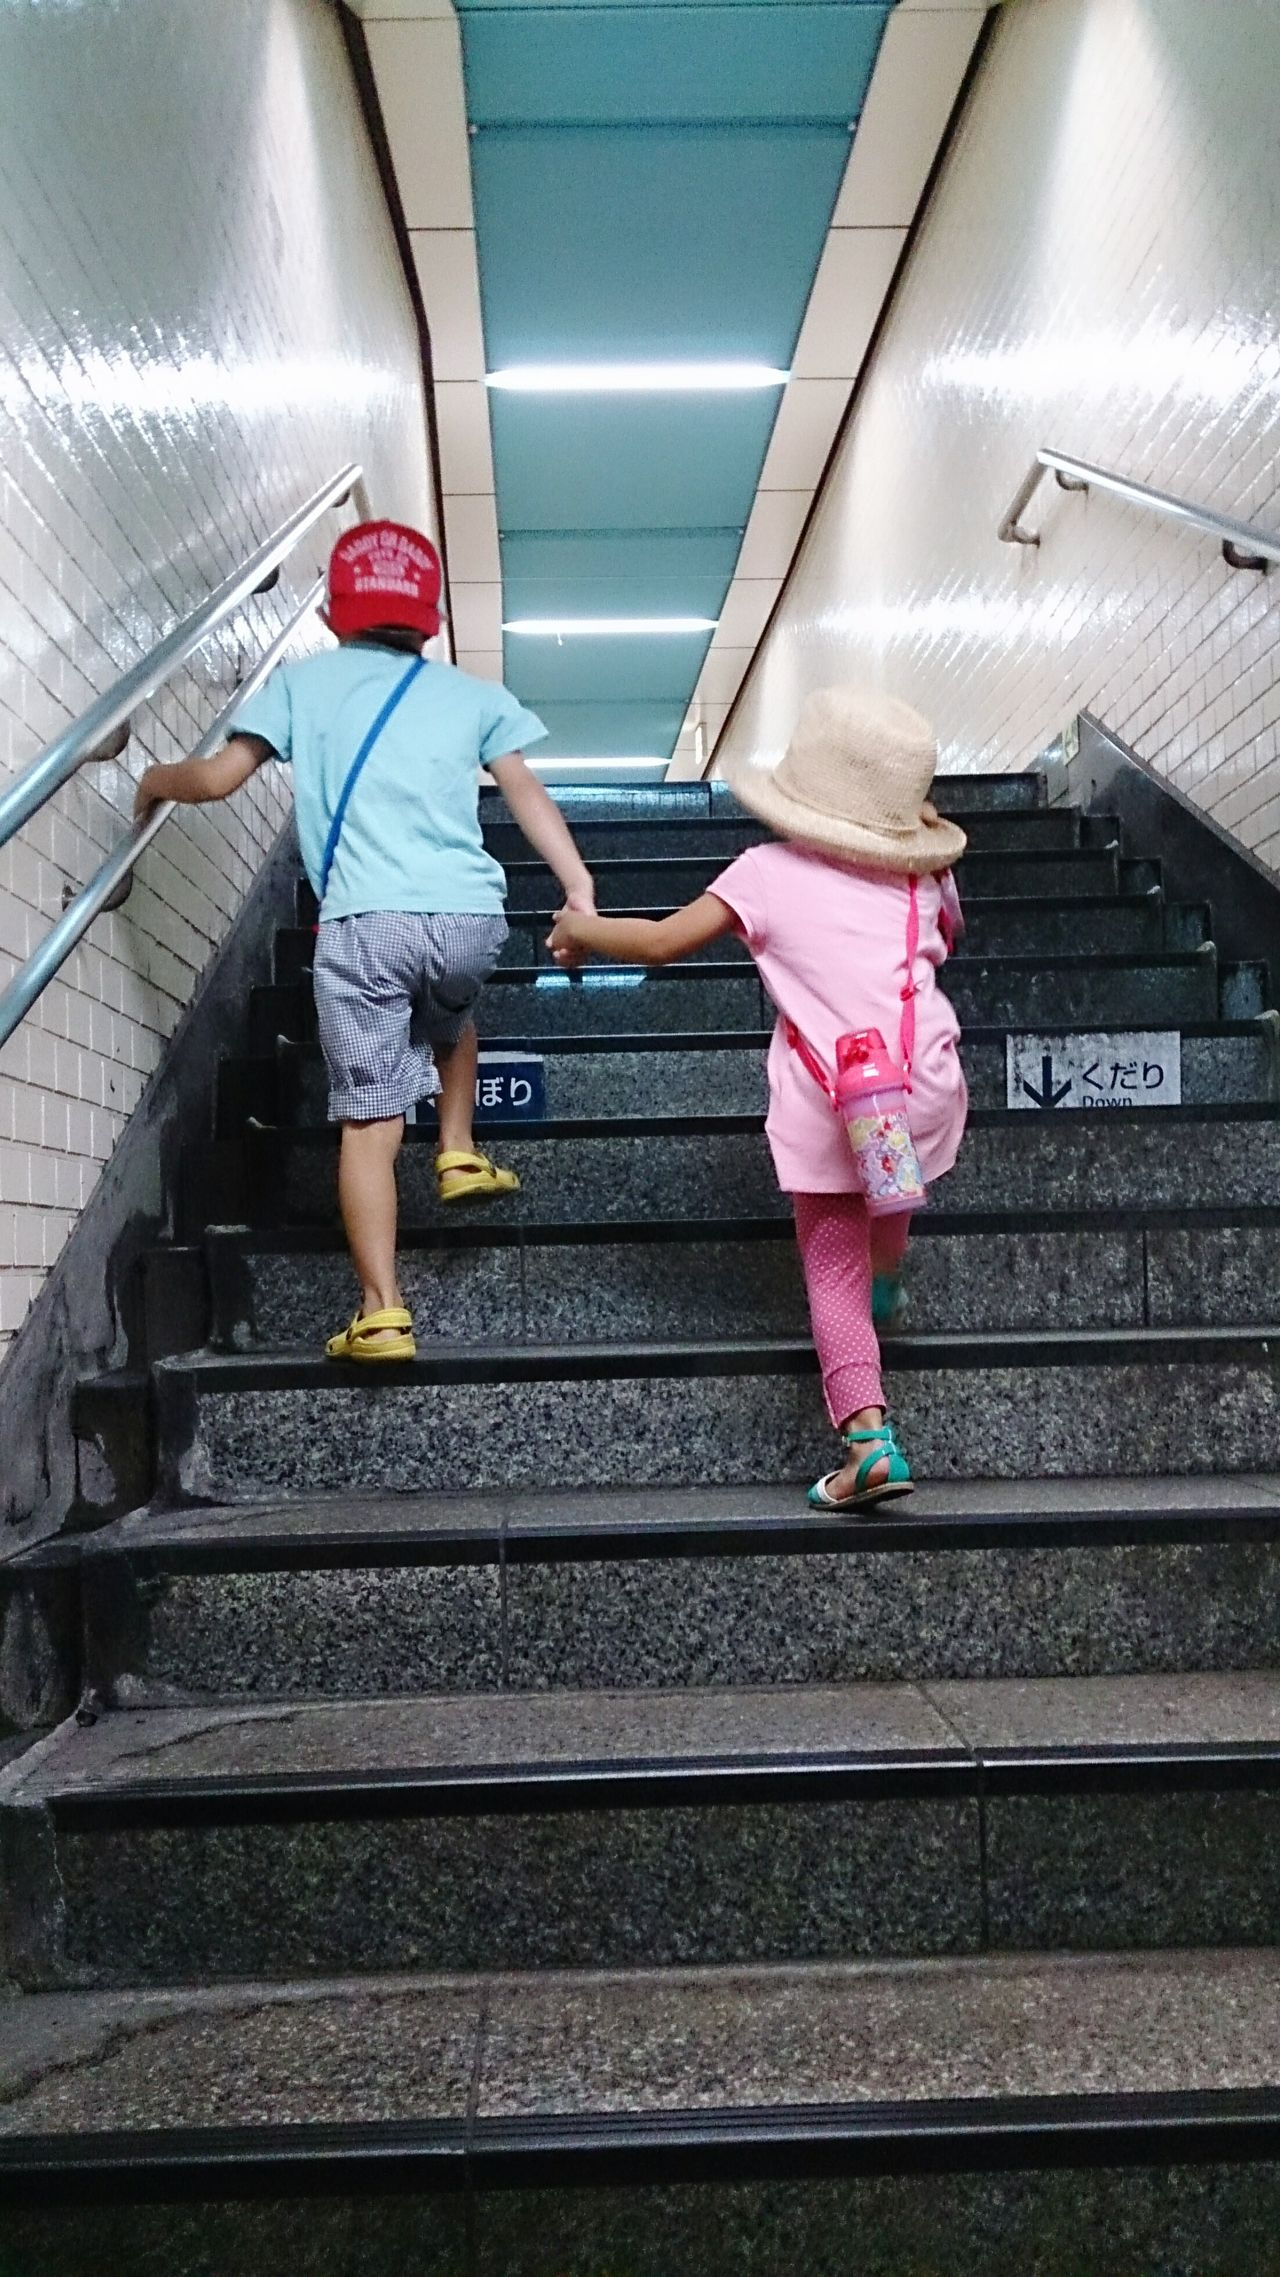 兄妹 兄 妹 駅 階段 Siblings Brother Sister Girl Boy Station Stairs 手 Hands Japanese  Couple なかよし Steps きょうだい